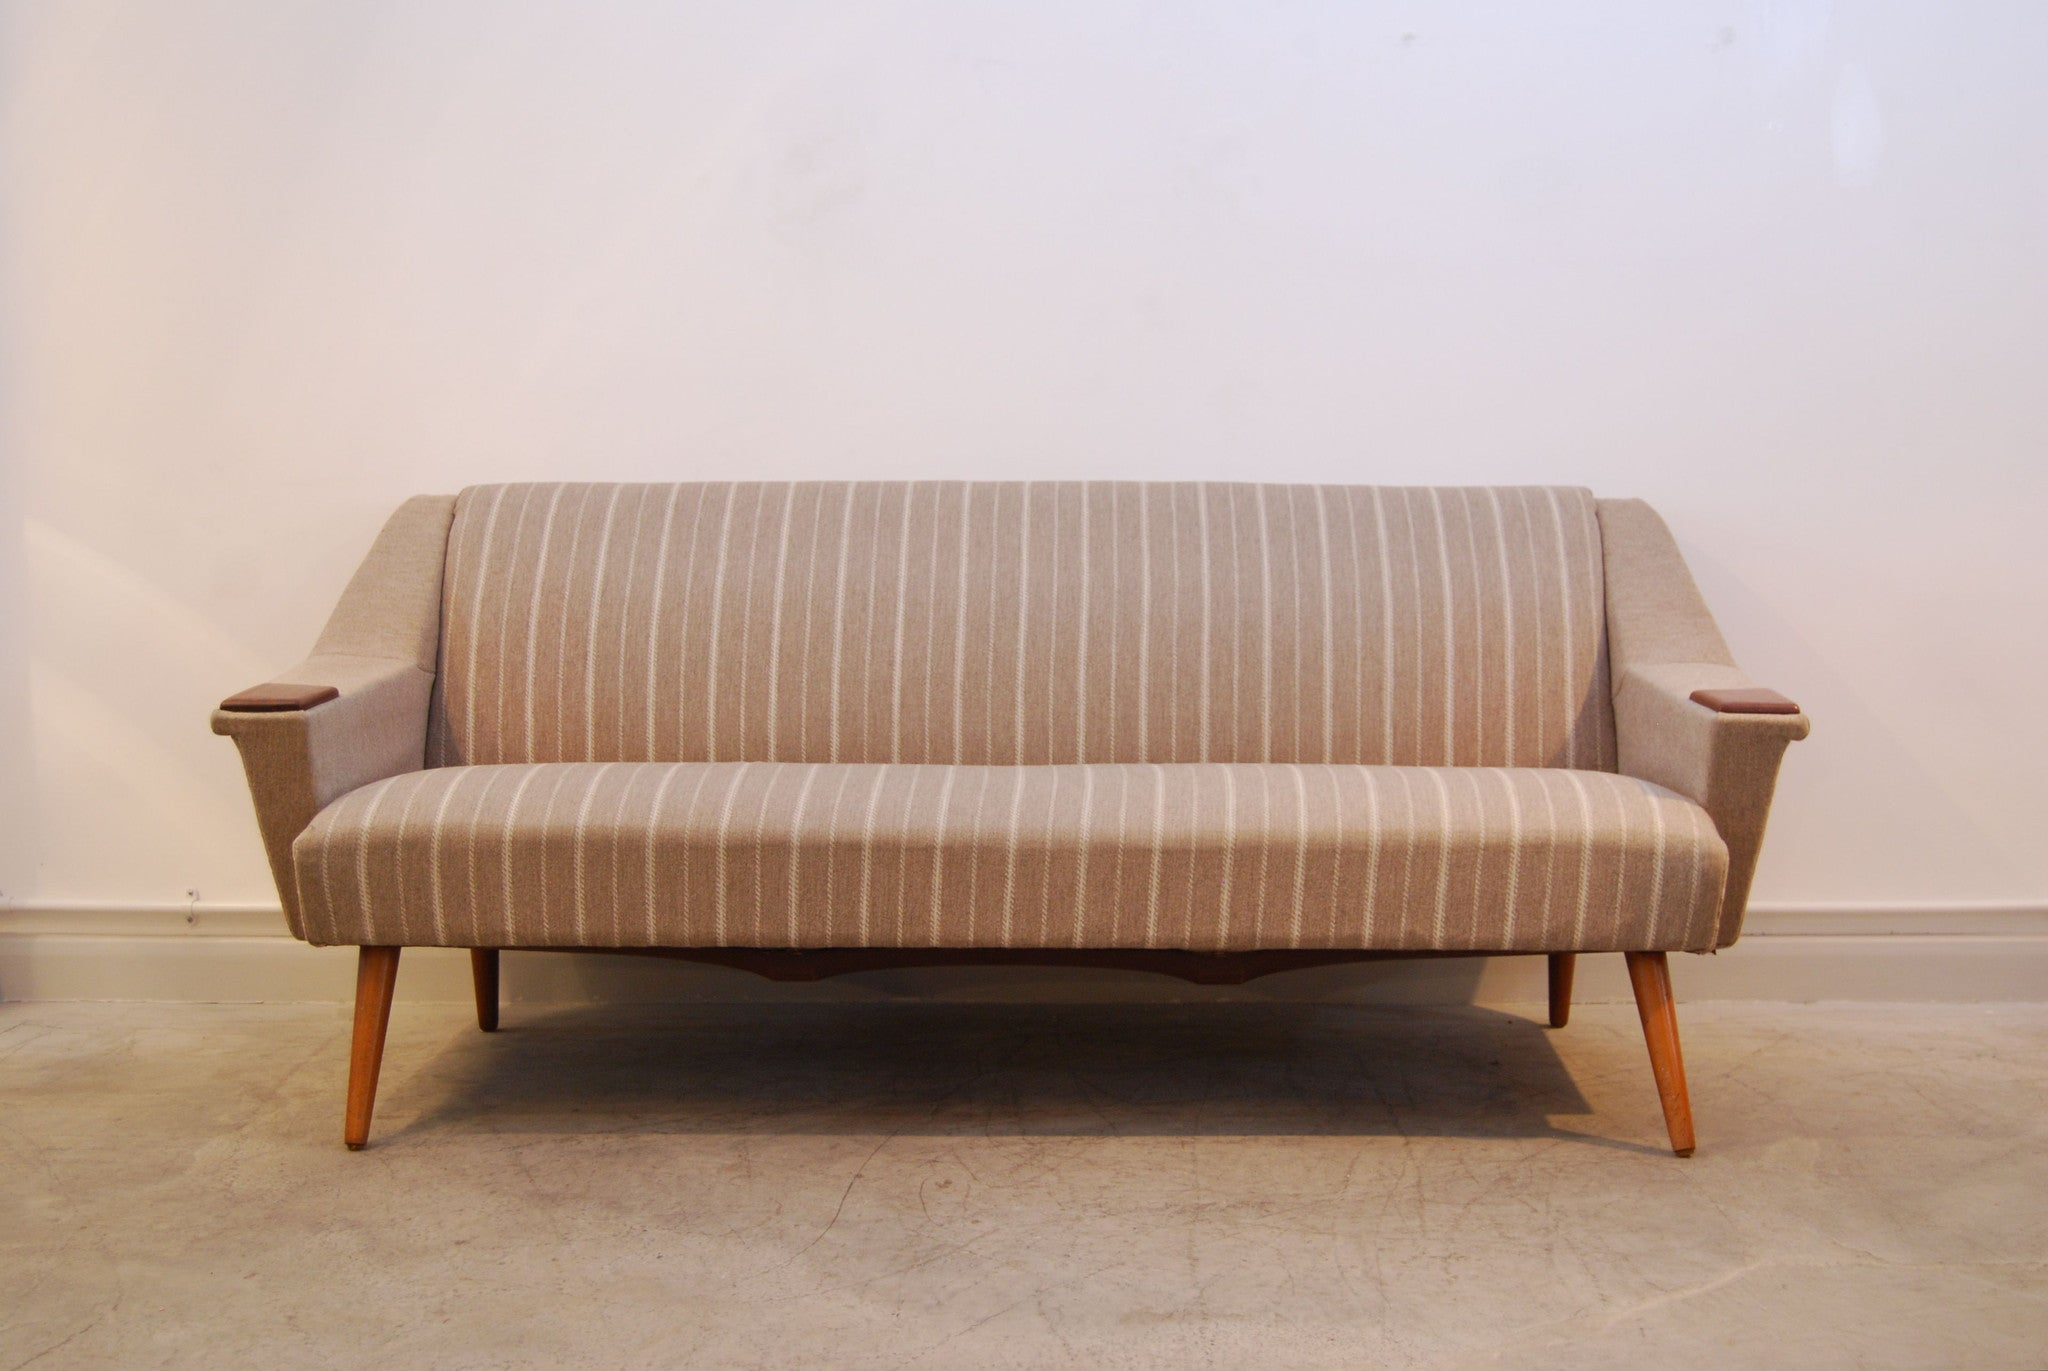 Three seat sofa with teak paws and legs